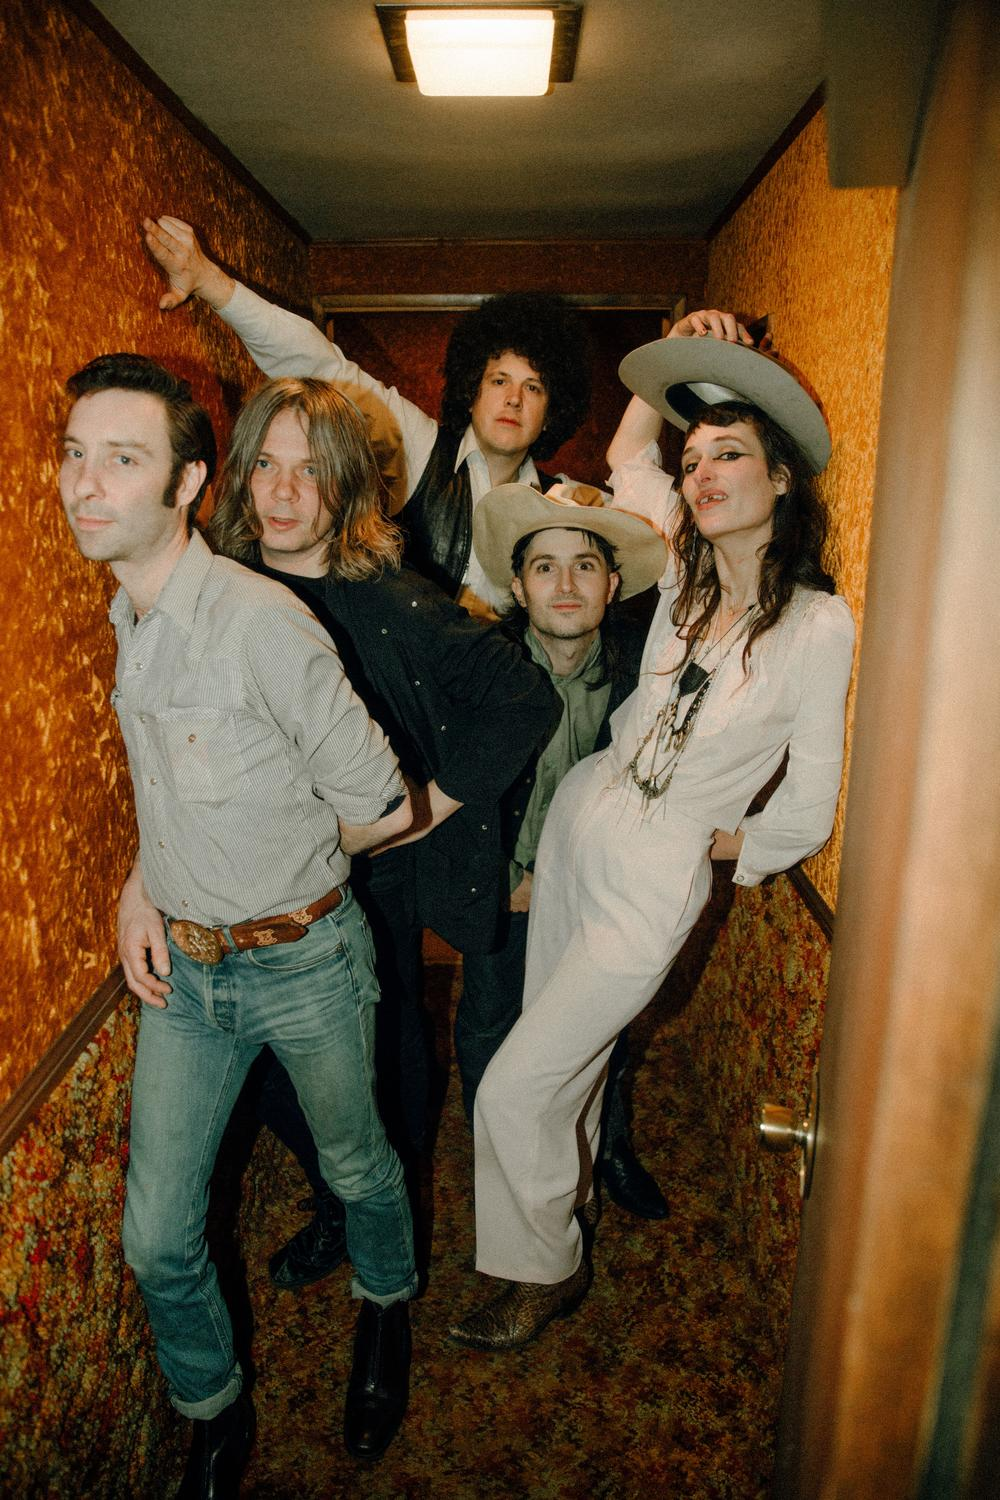 Atlanta's Black Lips are currently on a short U.S. tour, but will return just in time to hit the stage on the first day of the 2019 Shaky Knees Music Festival, which begins Friday, May 3.